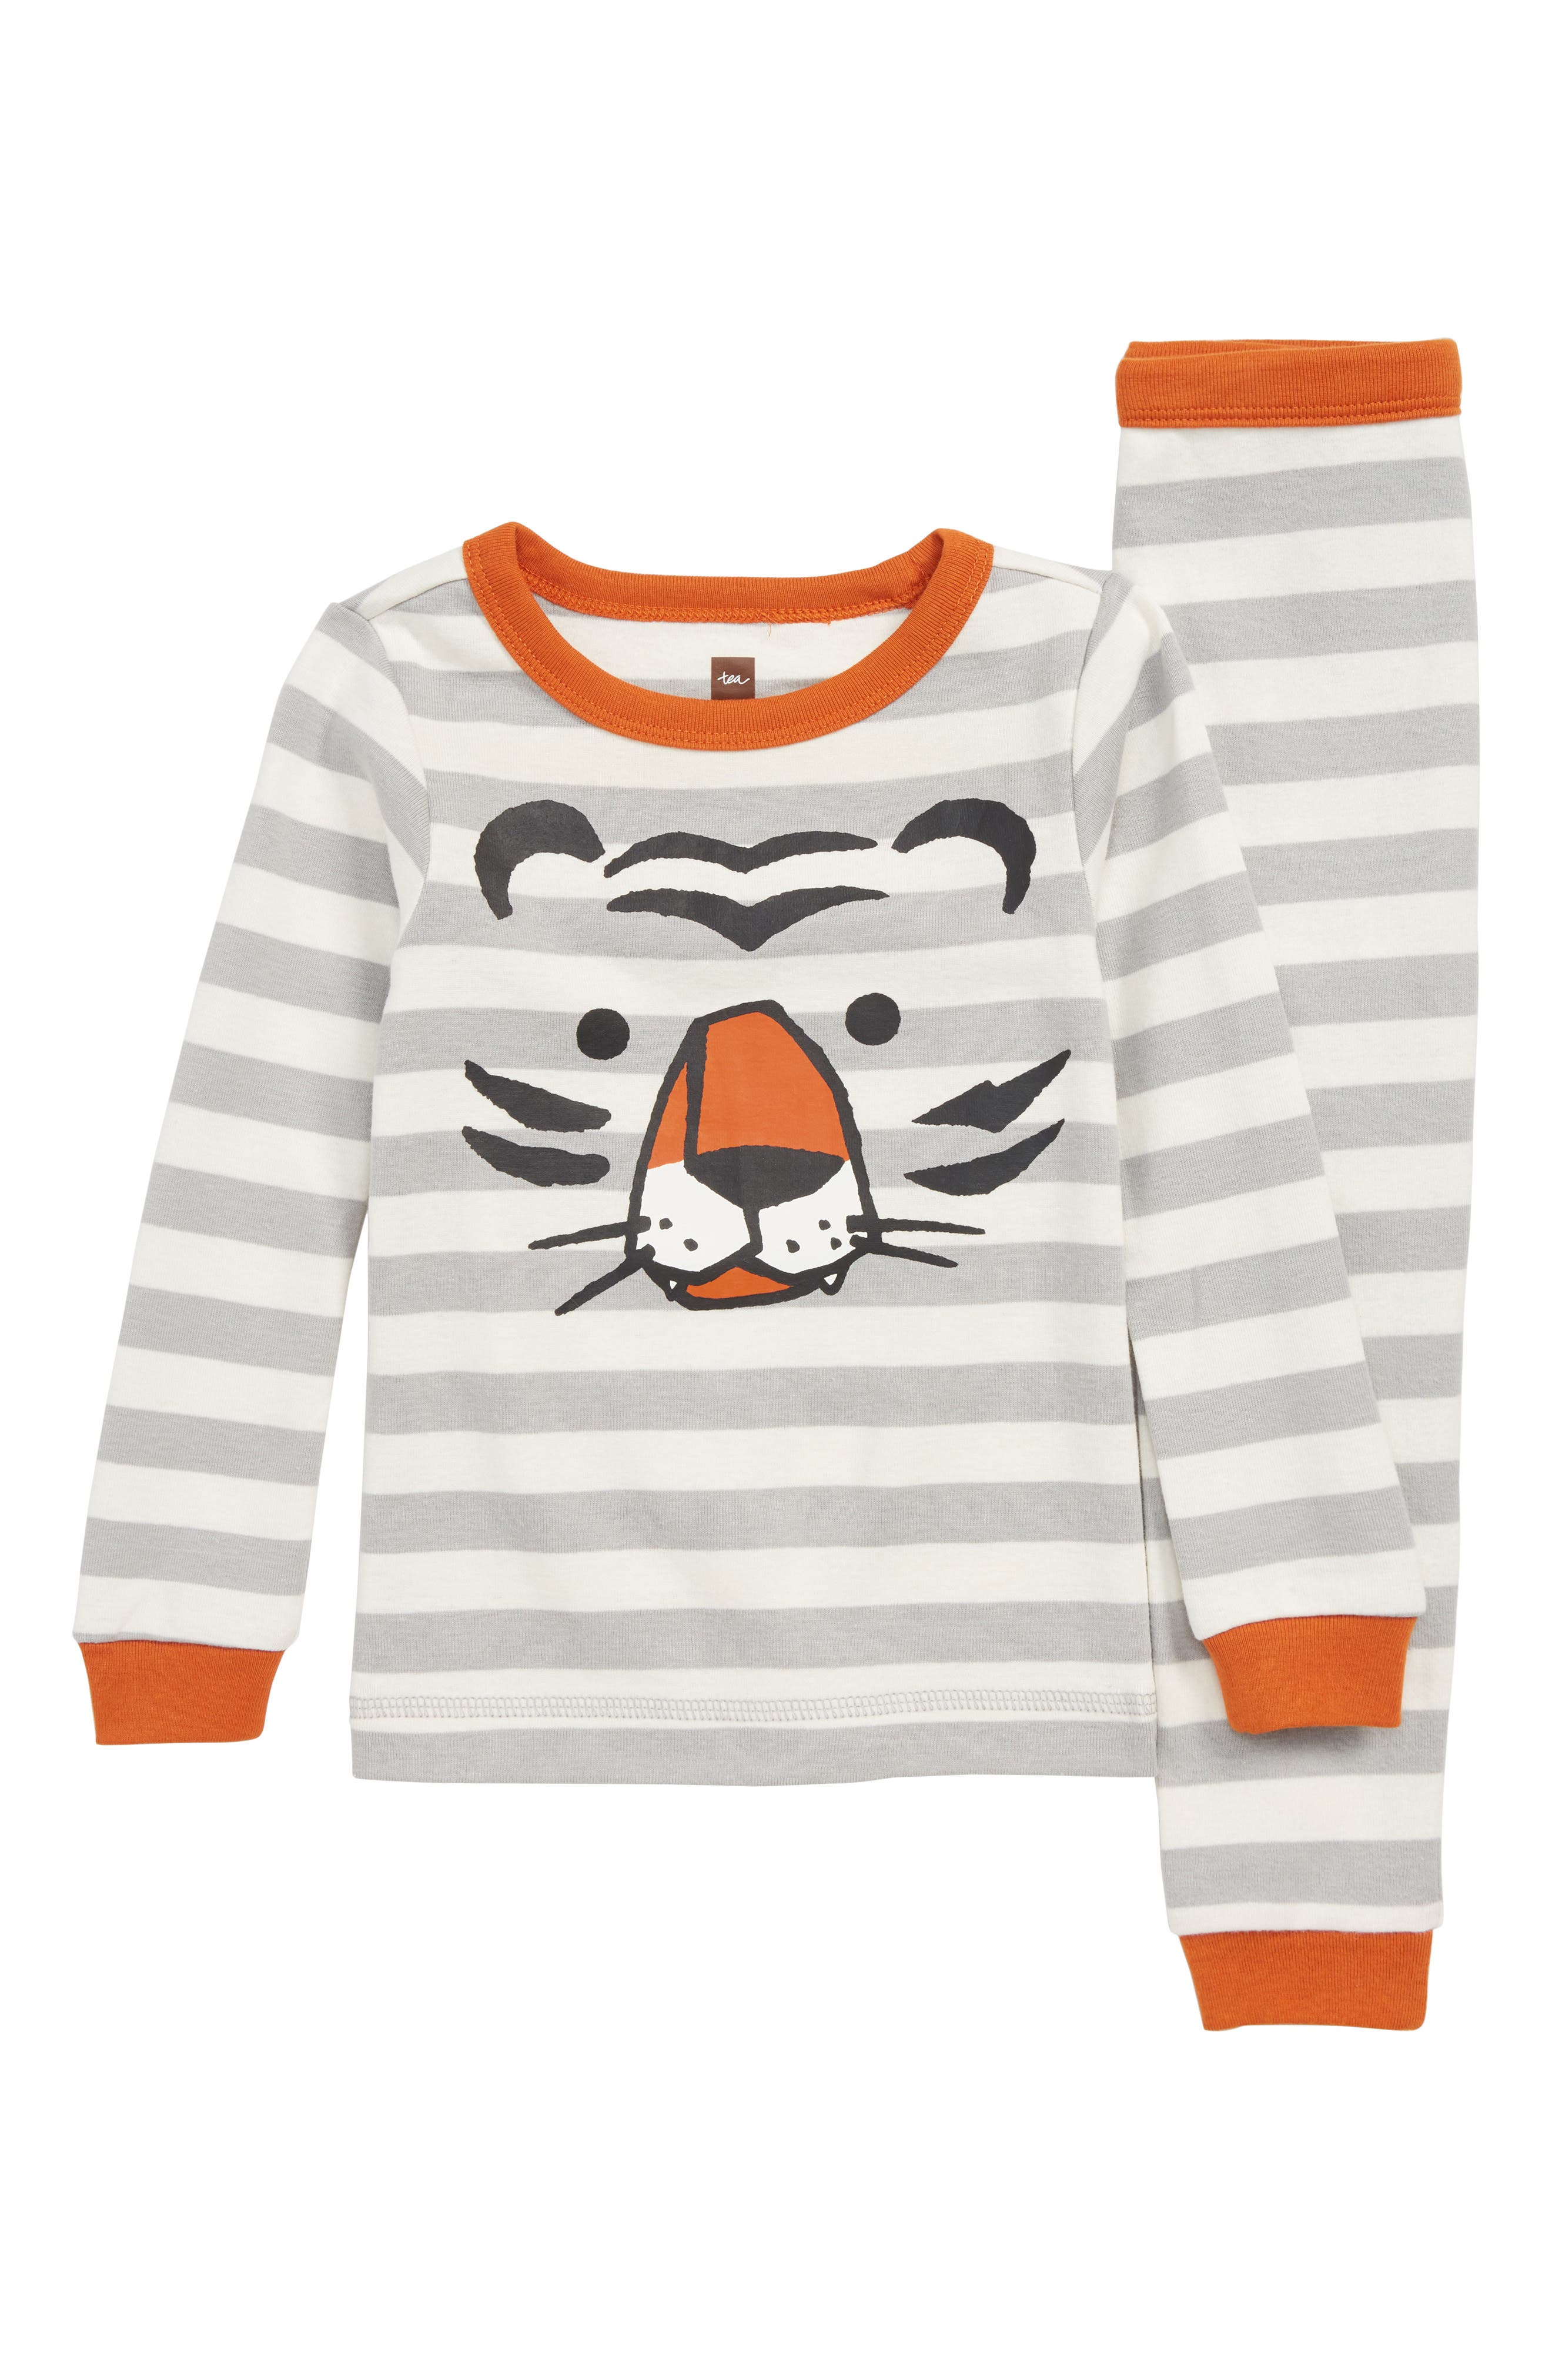 Toddler Boys Tea Collection Stripe Tiger Fitted TwoPiece Pajamas Size 3T  White